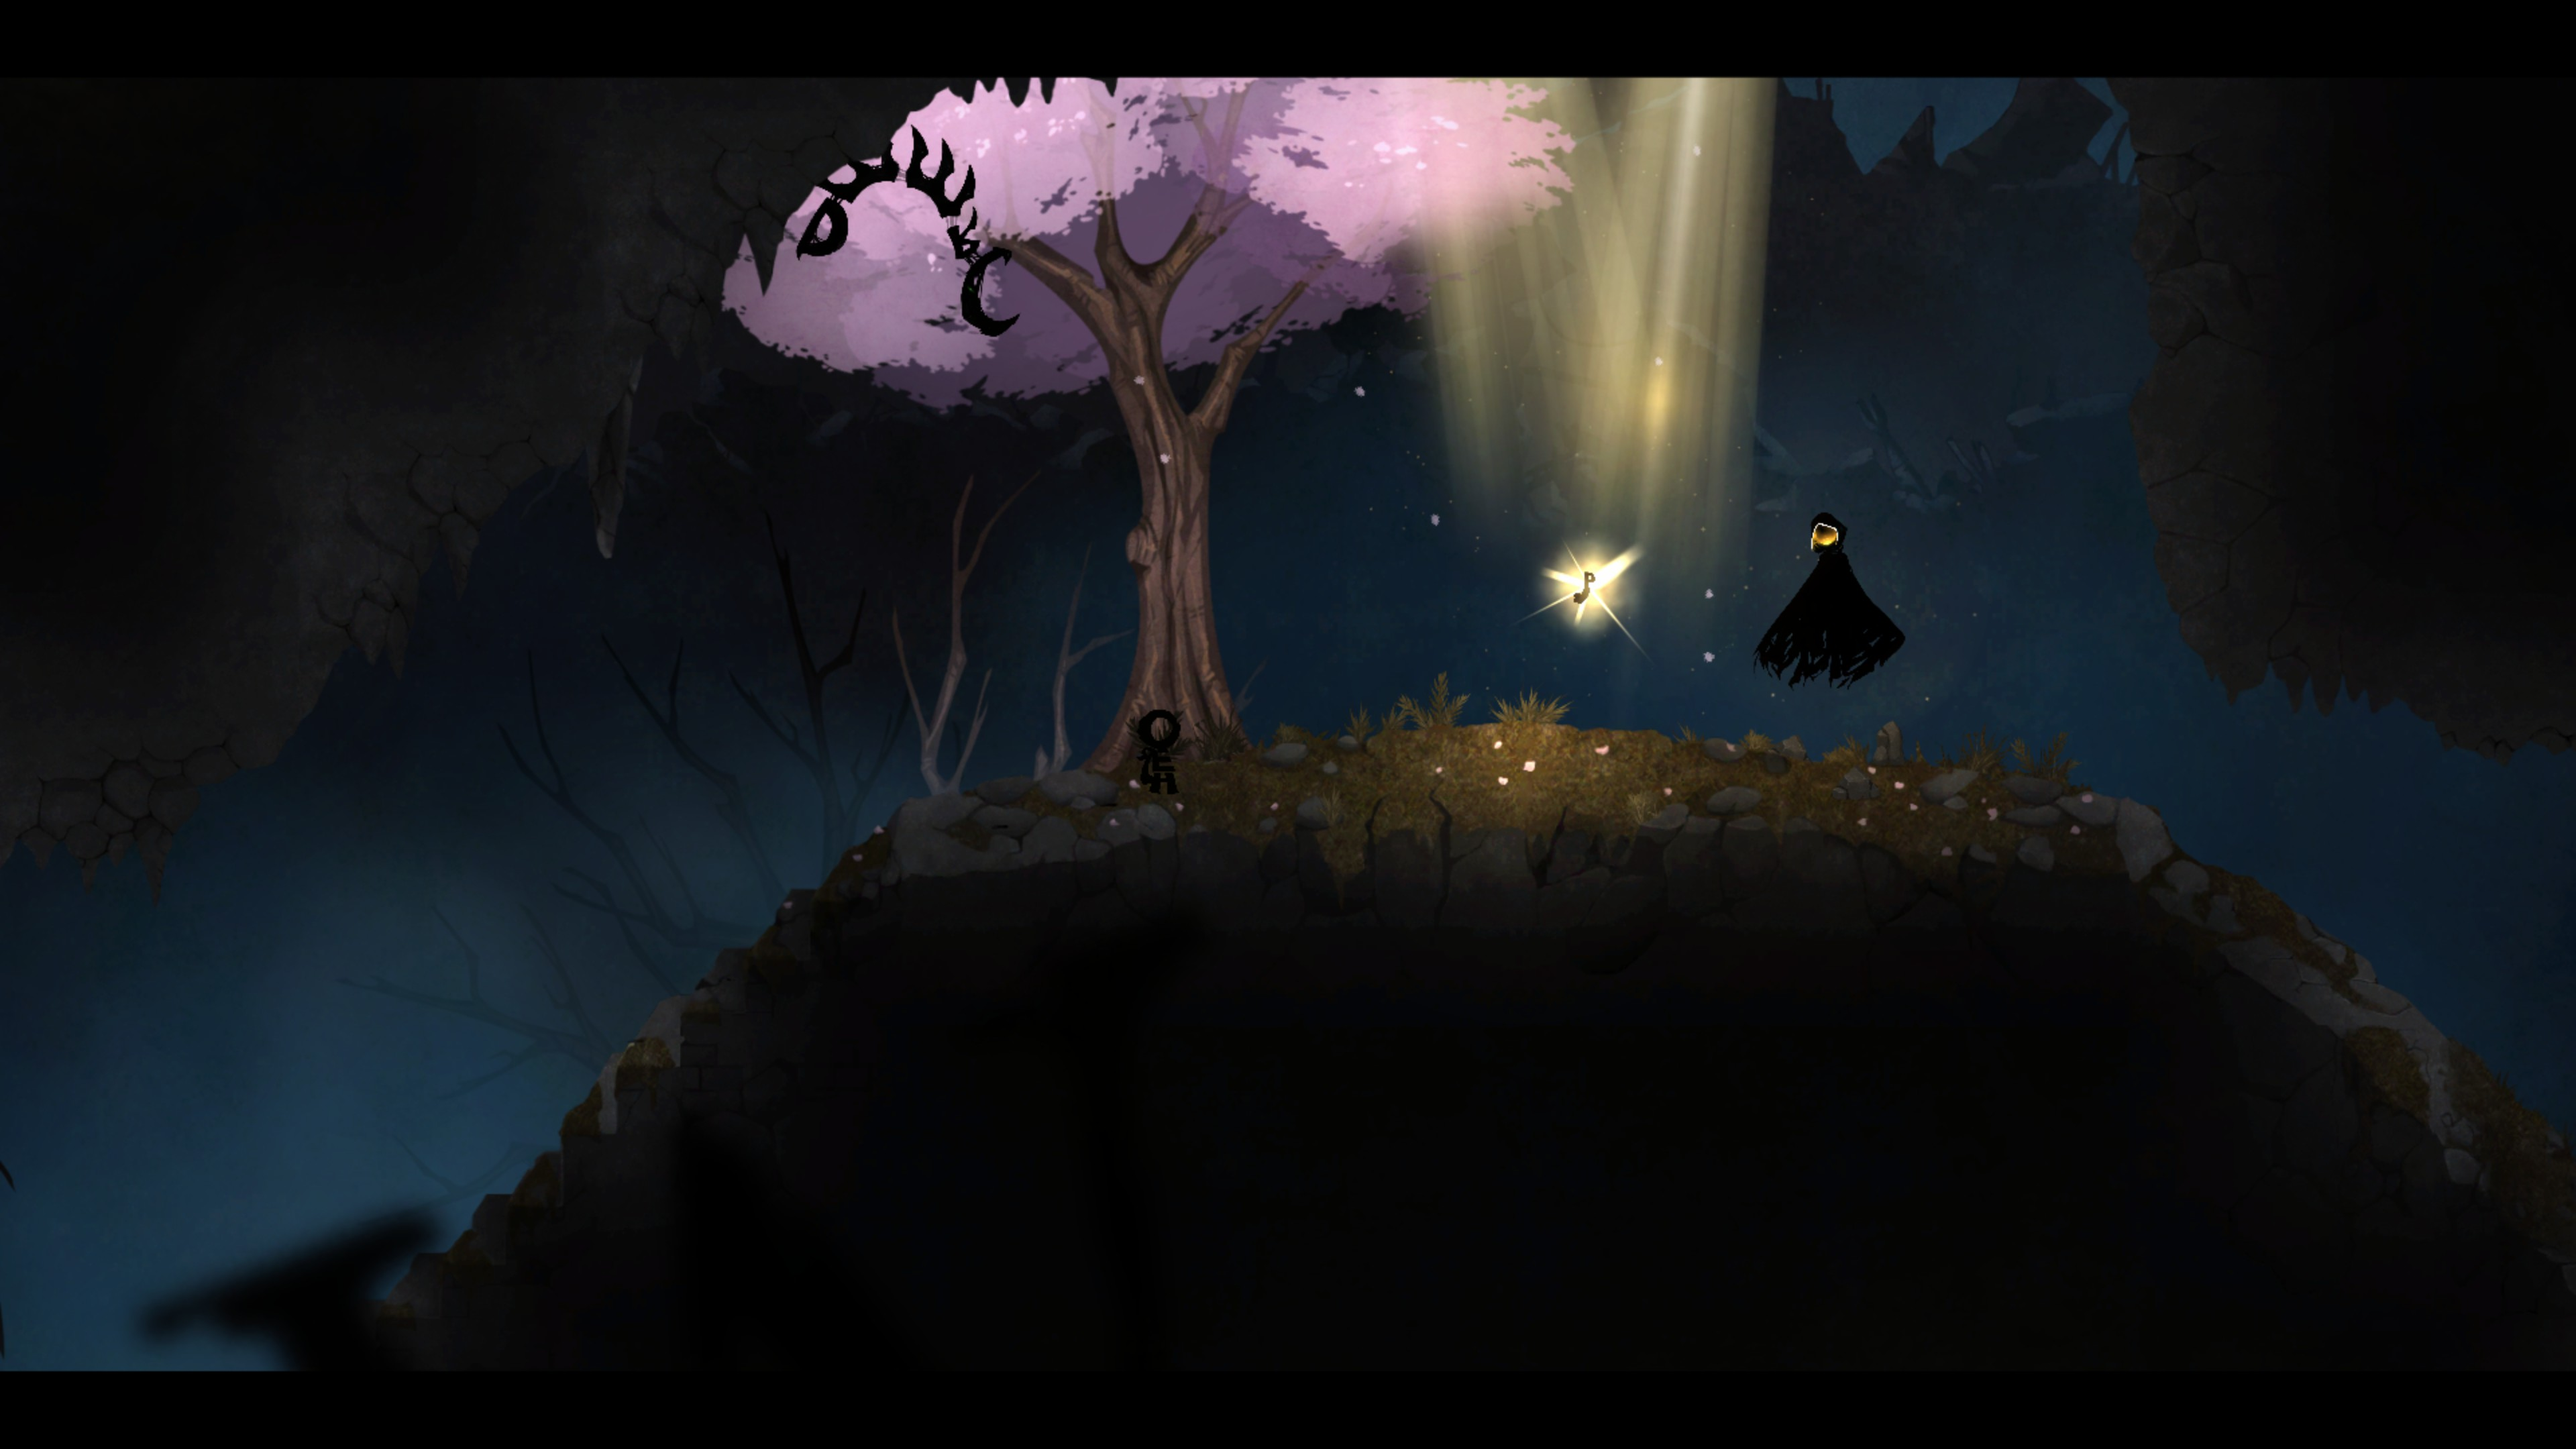 the main character HERO sees his missing arm (the letter P) in a ray of light beside MUSE. GREED looks upon the scene.